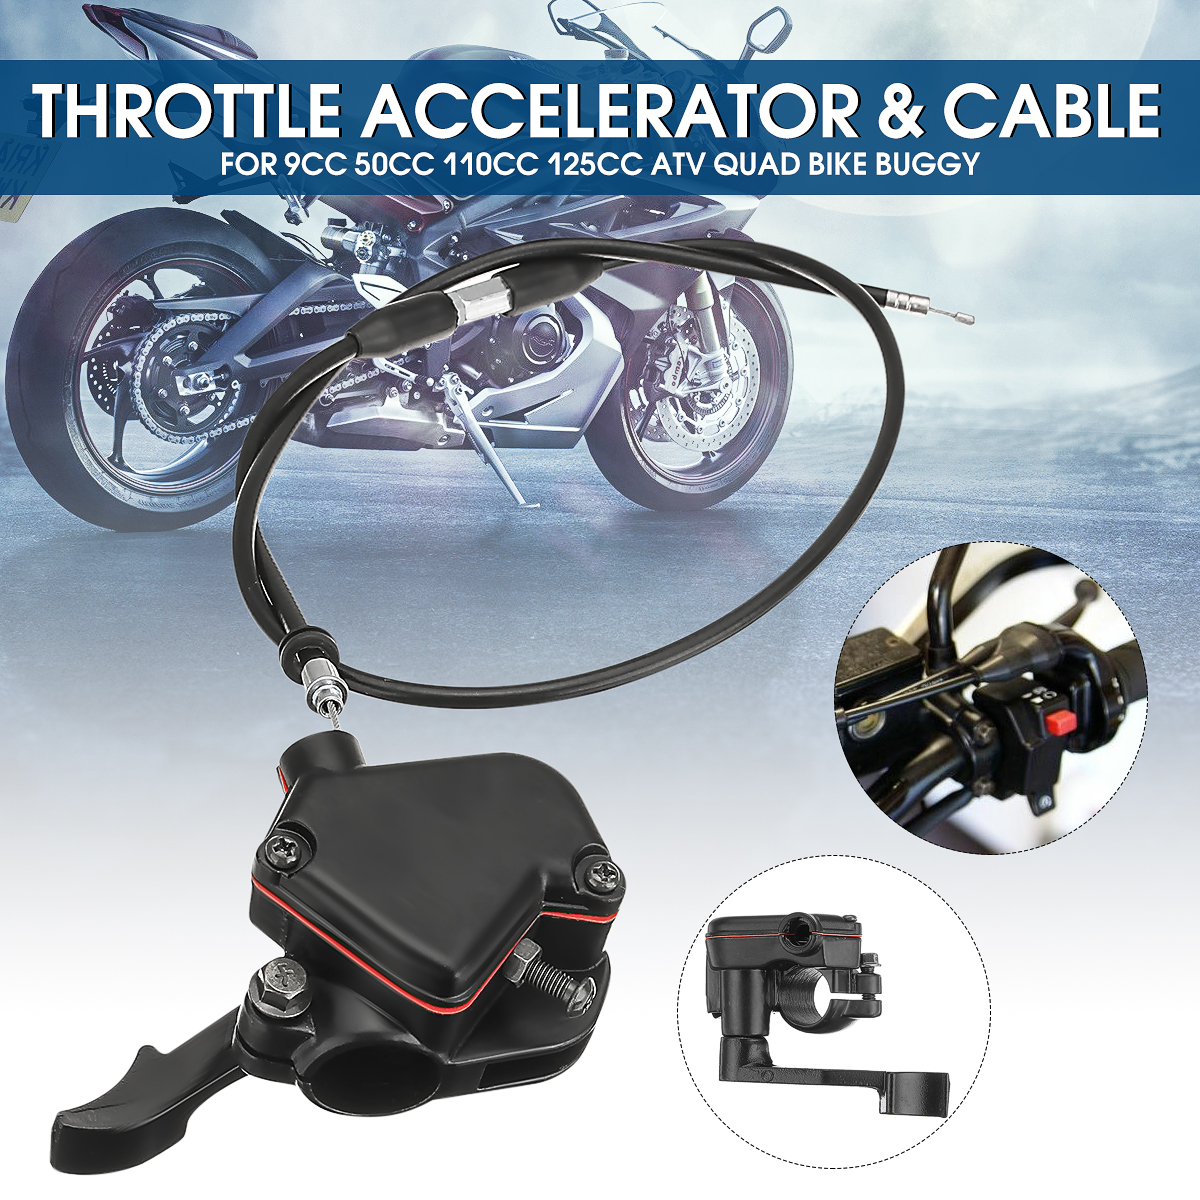 High Quality Motorcycle Thumb Throttle With Accelerator Cable For 50-150cc 110cc Mini Moto Quad 4 Stroke Atv Pit Bike Black Sales Of Quality Assurance Atv,rv,boat & Other Vehicle